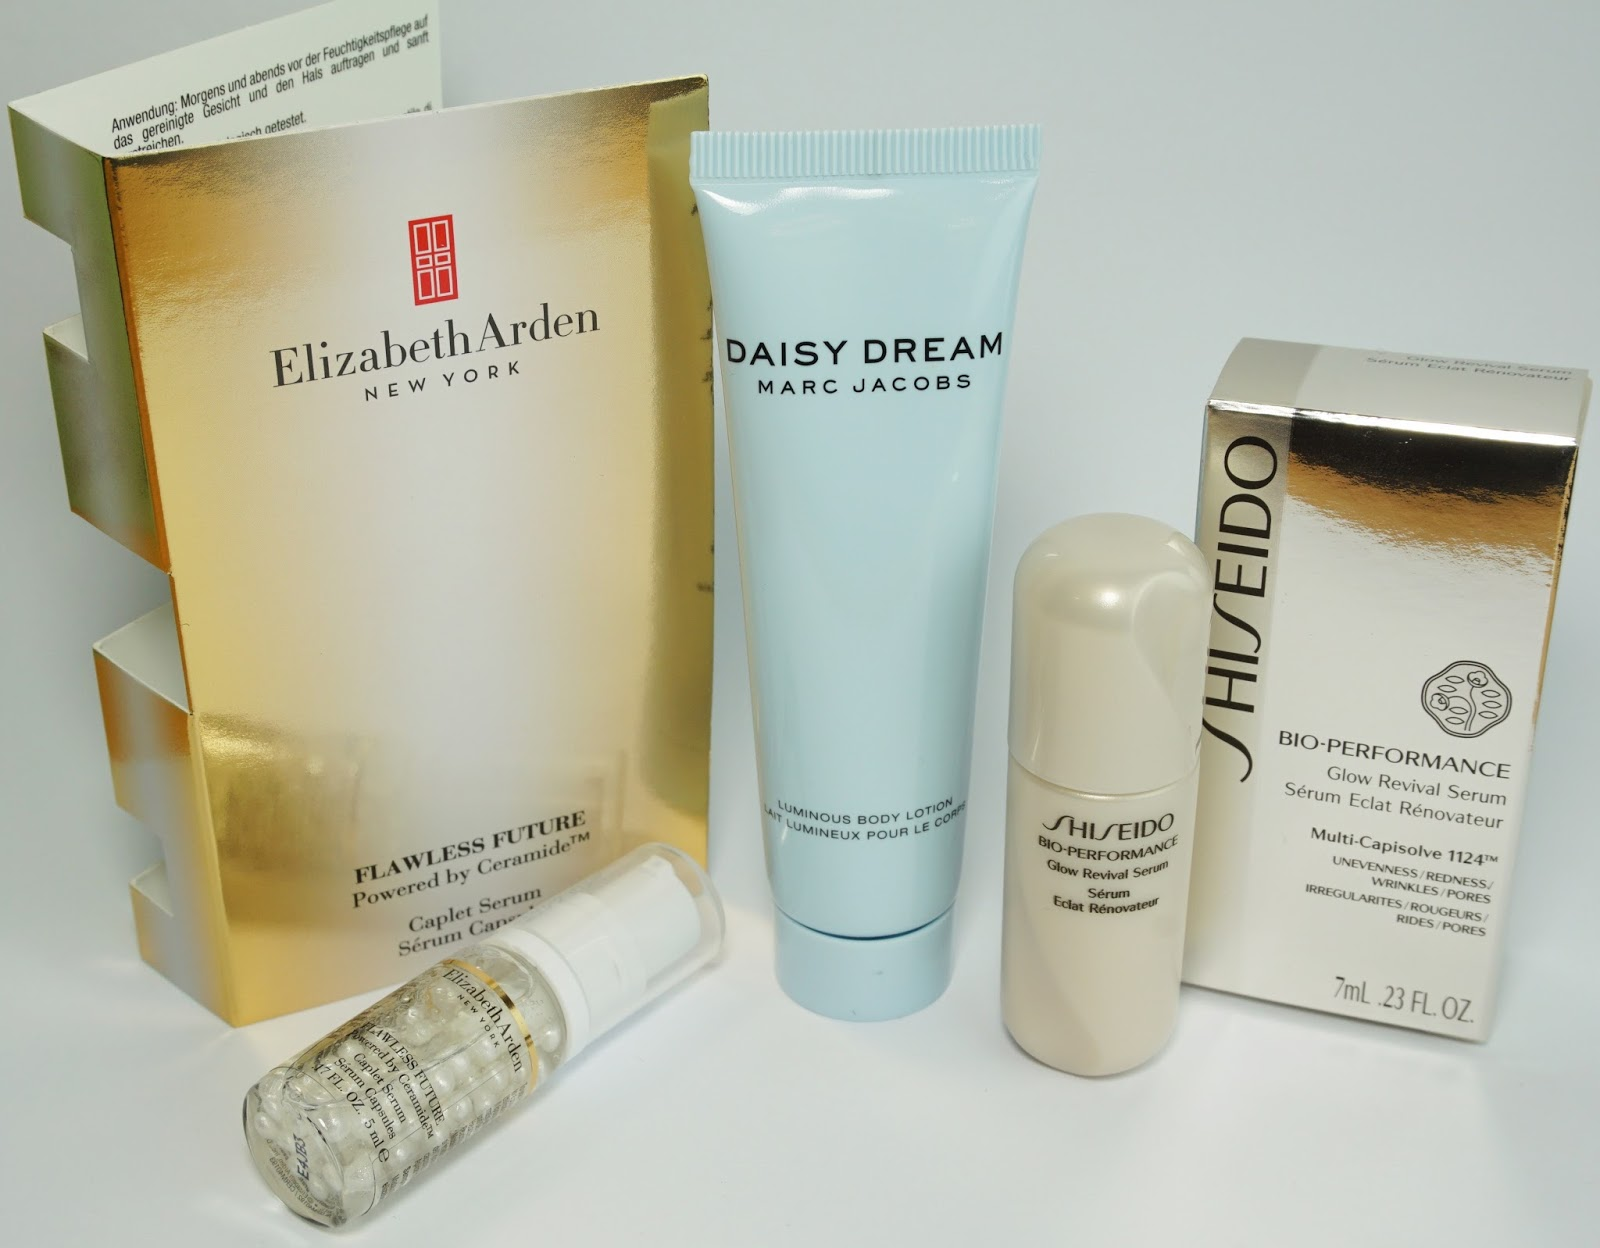 Douglas - Box of Beauty (Feburar 2015 - Österreich-Edition) Elizabeth Arden, Marc Jacobs, Shiseido